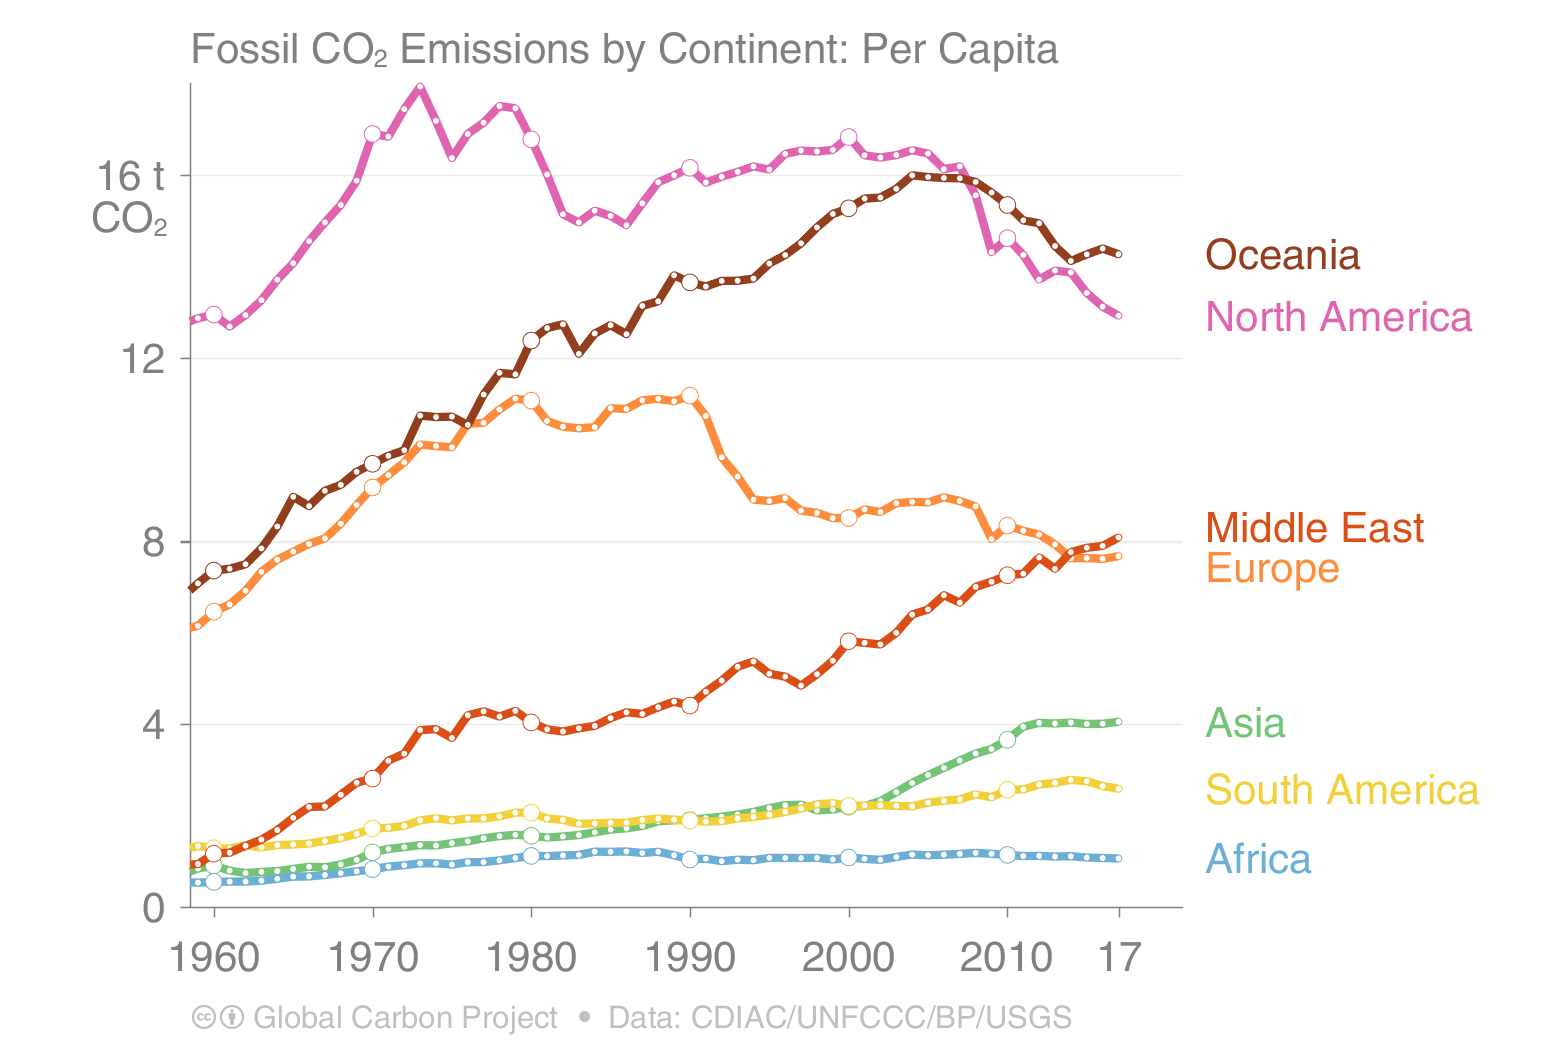 Fossil CO2 emissions by continent per capita